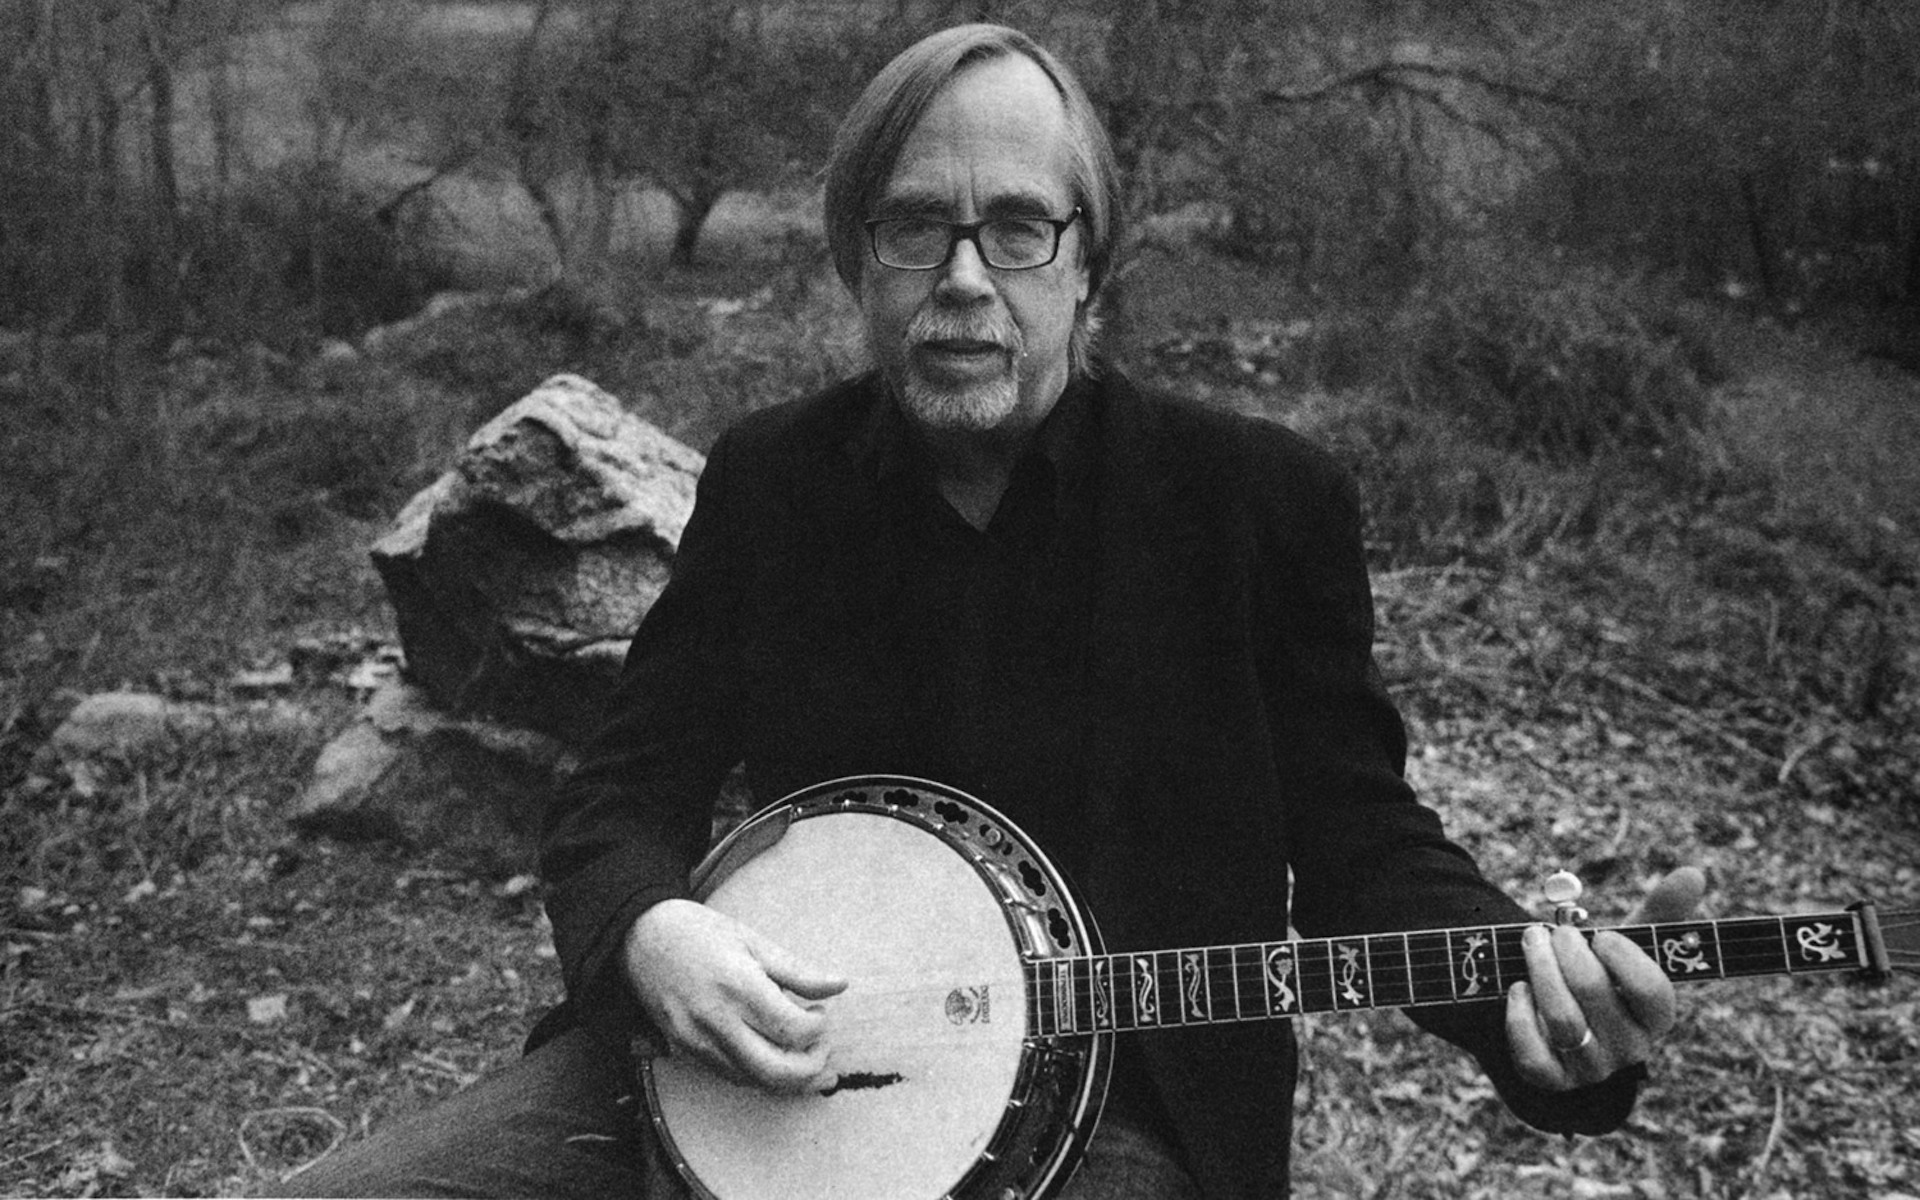 PODCAST EPISODE 027: Tony Trischka talks banjo, Pete Seeger, Bela Fleck, Earl Scruggs, Steve Martin, and Bruce Springsteen